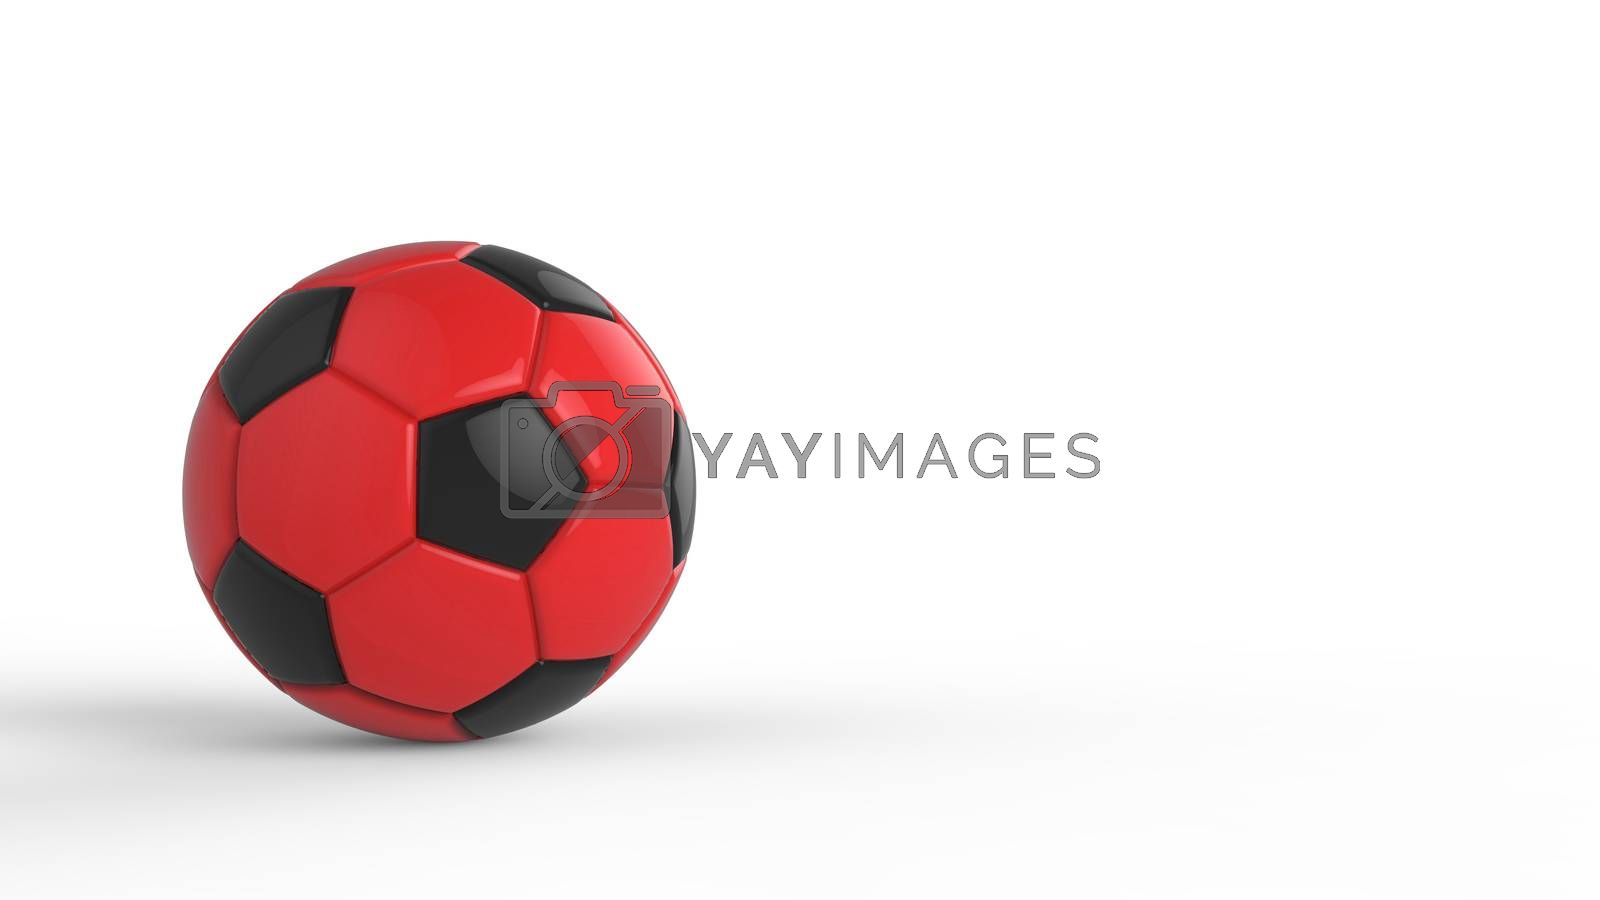 red soccer plastic leather metal fabric ball isolated on black background. Football 3d render illustration.